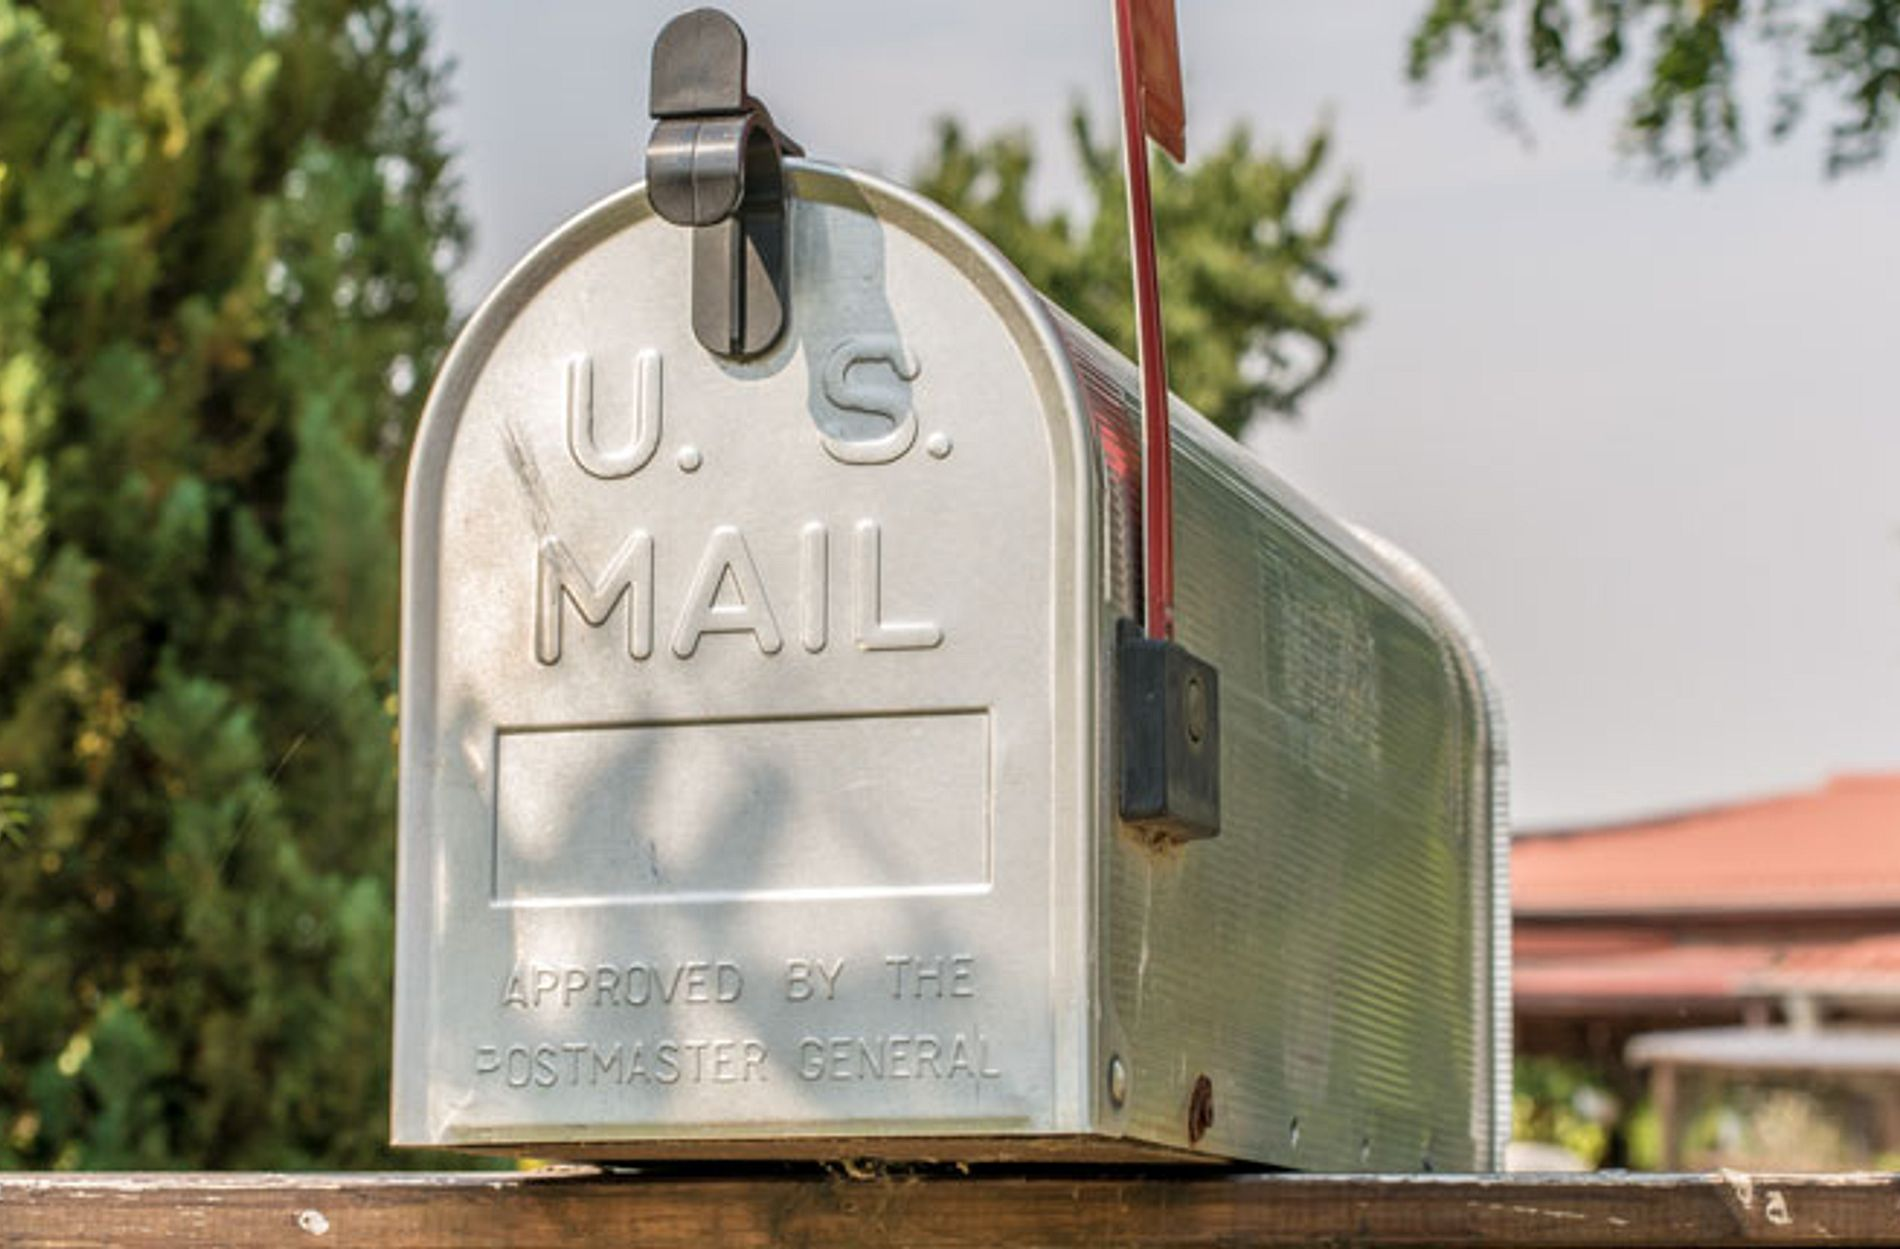 US mailbox from the front with upright flag